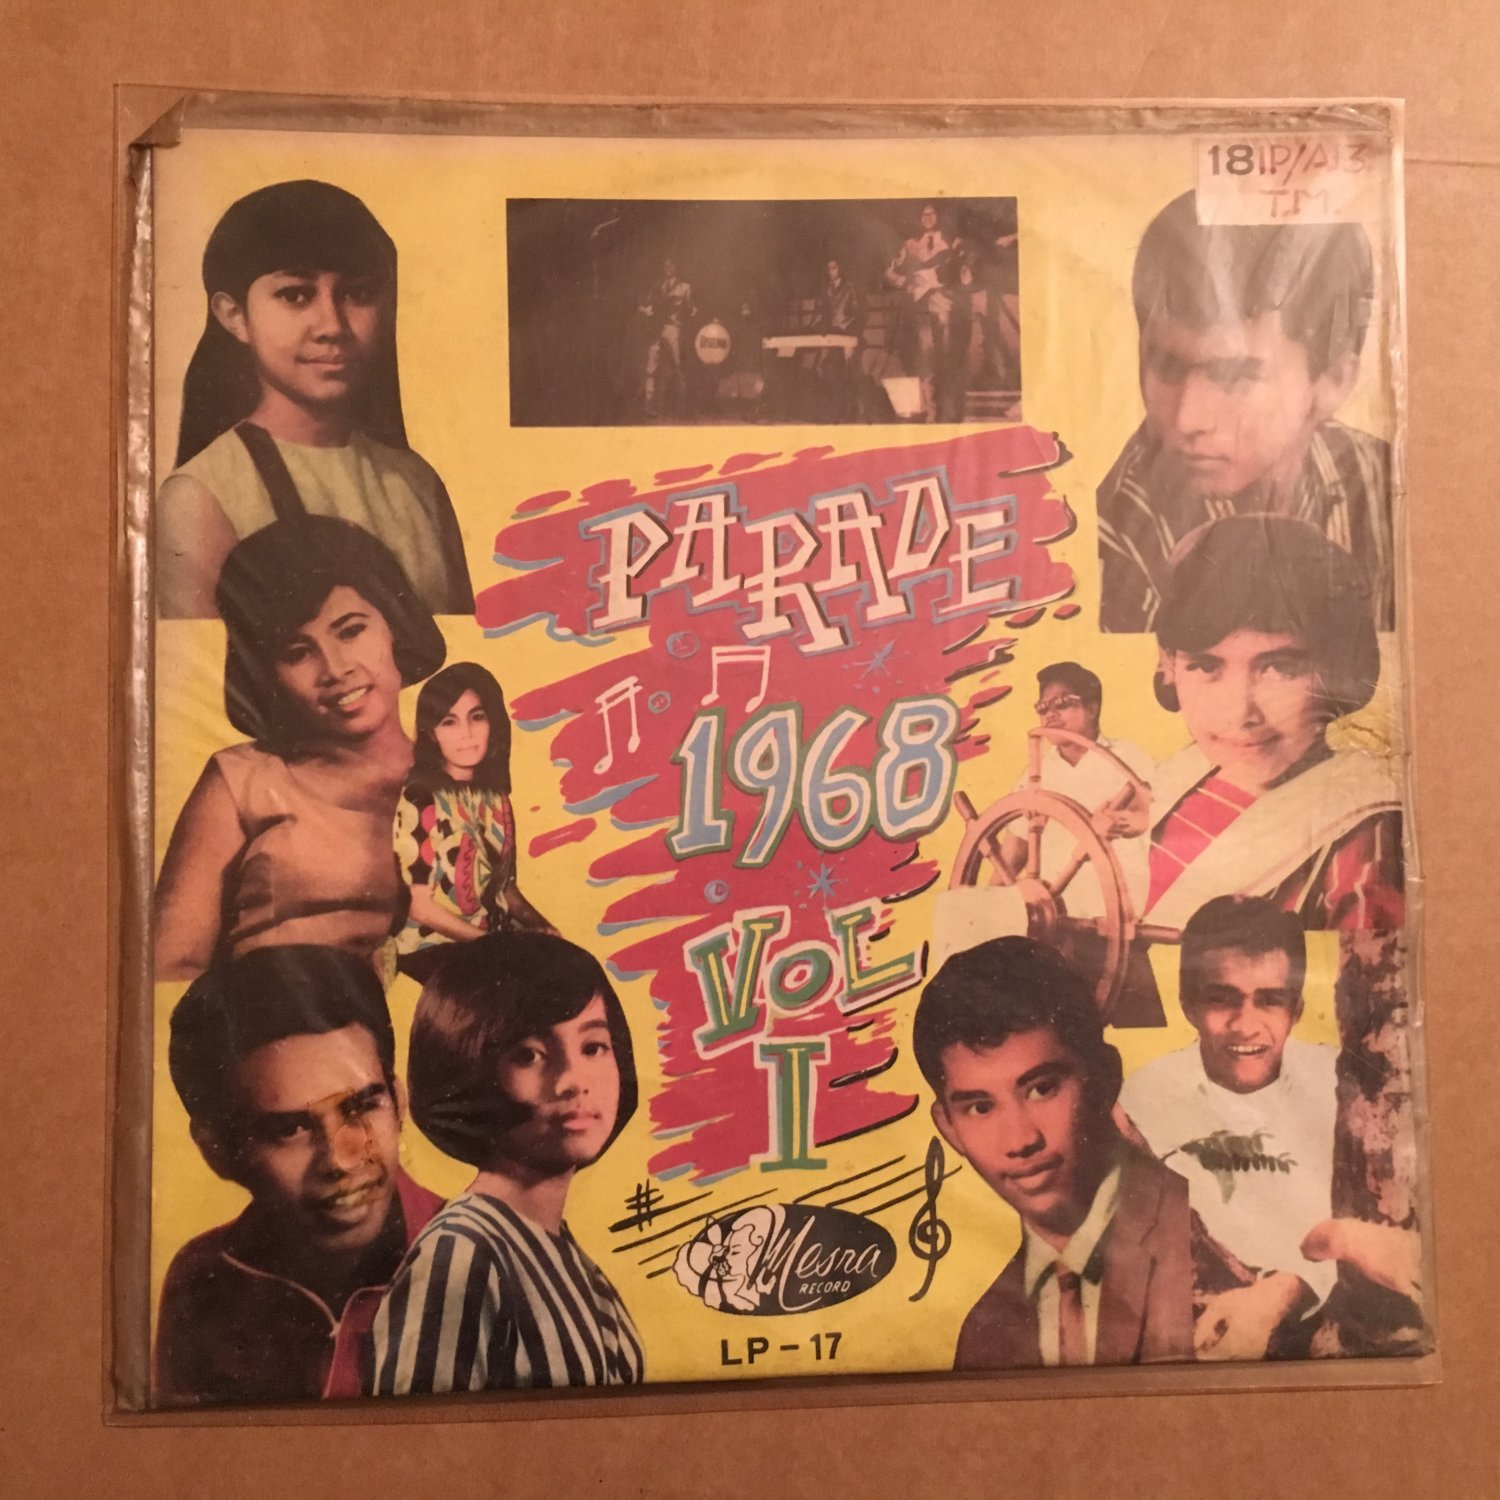 PARADE 1968 LP vol. I INDONESIA MESRA GARAGE mp3 LISTEN